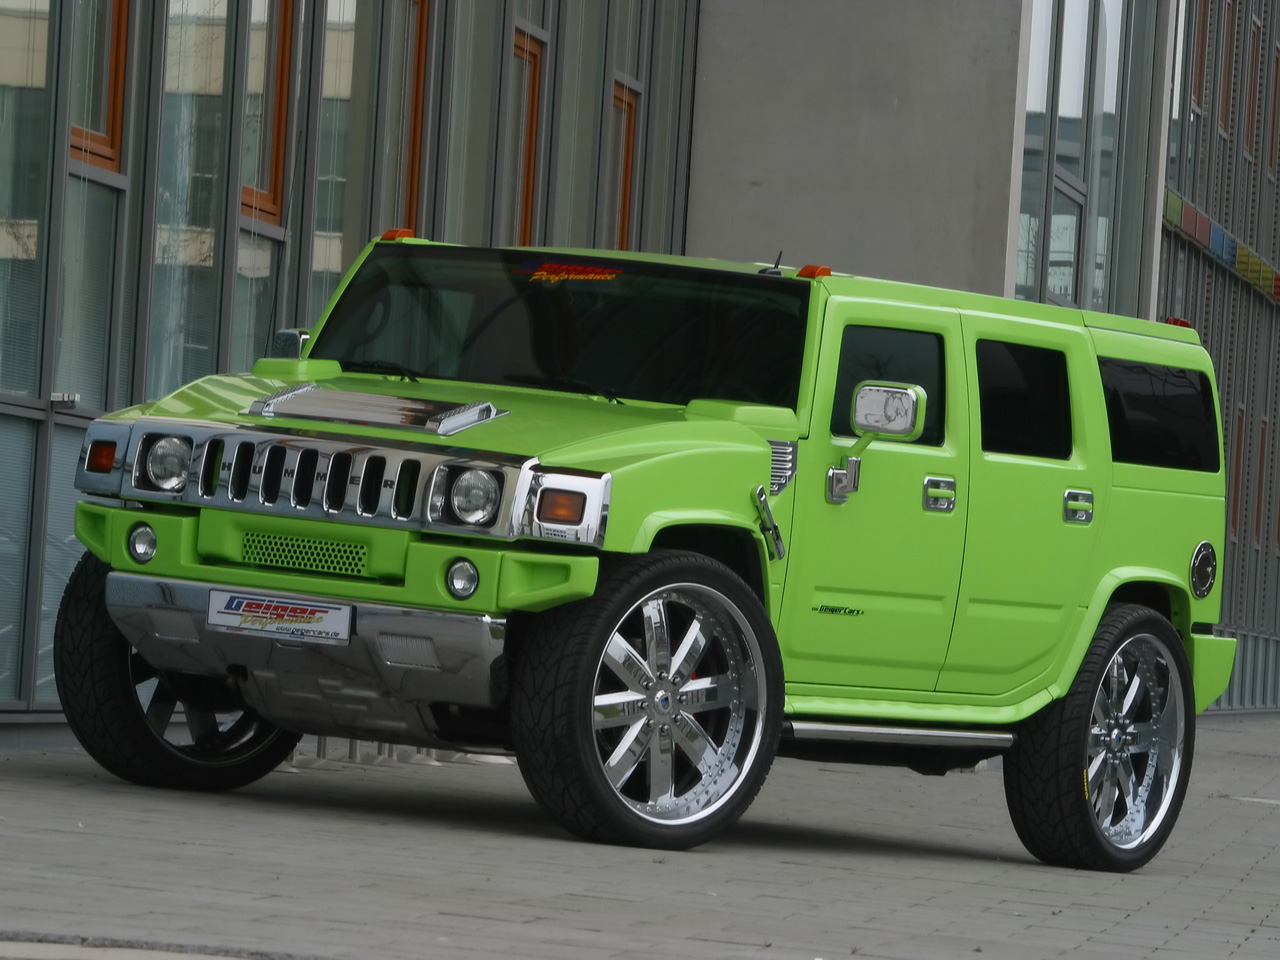 a thing for Hummer's but